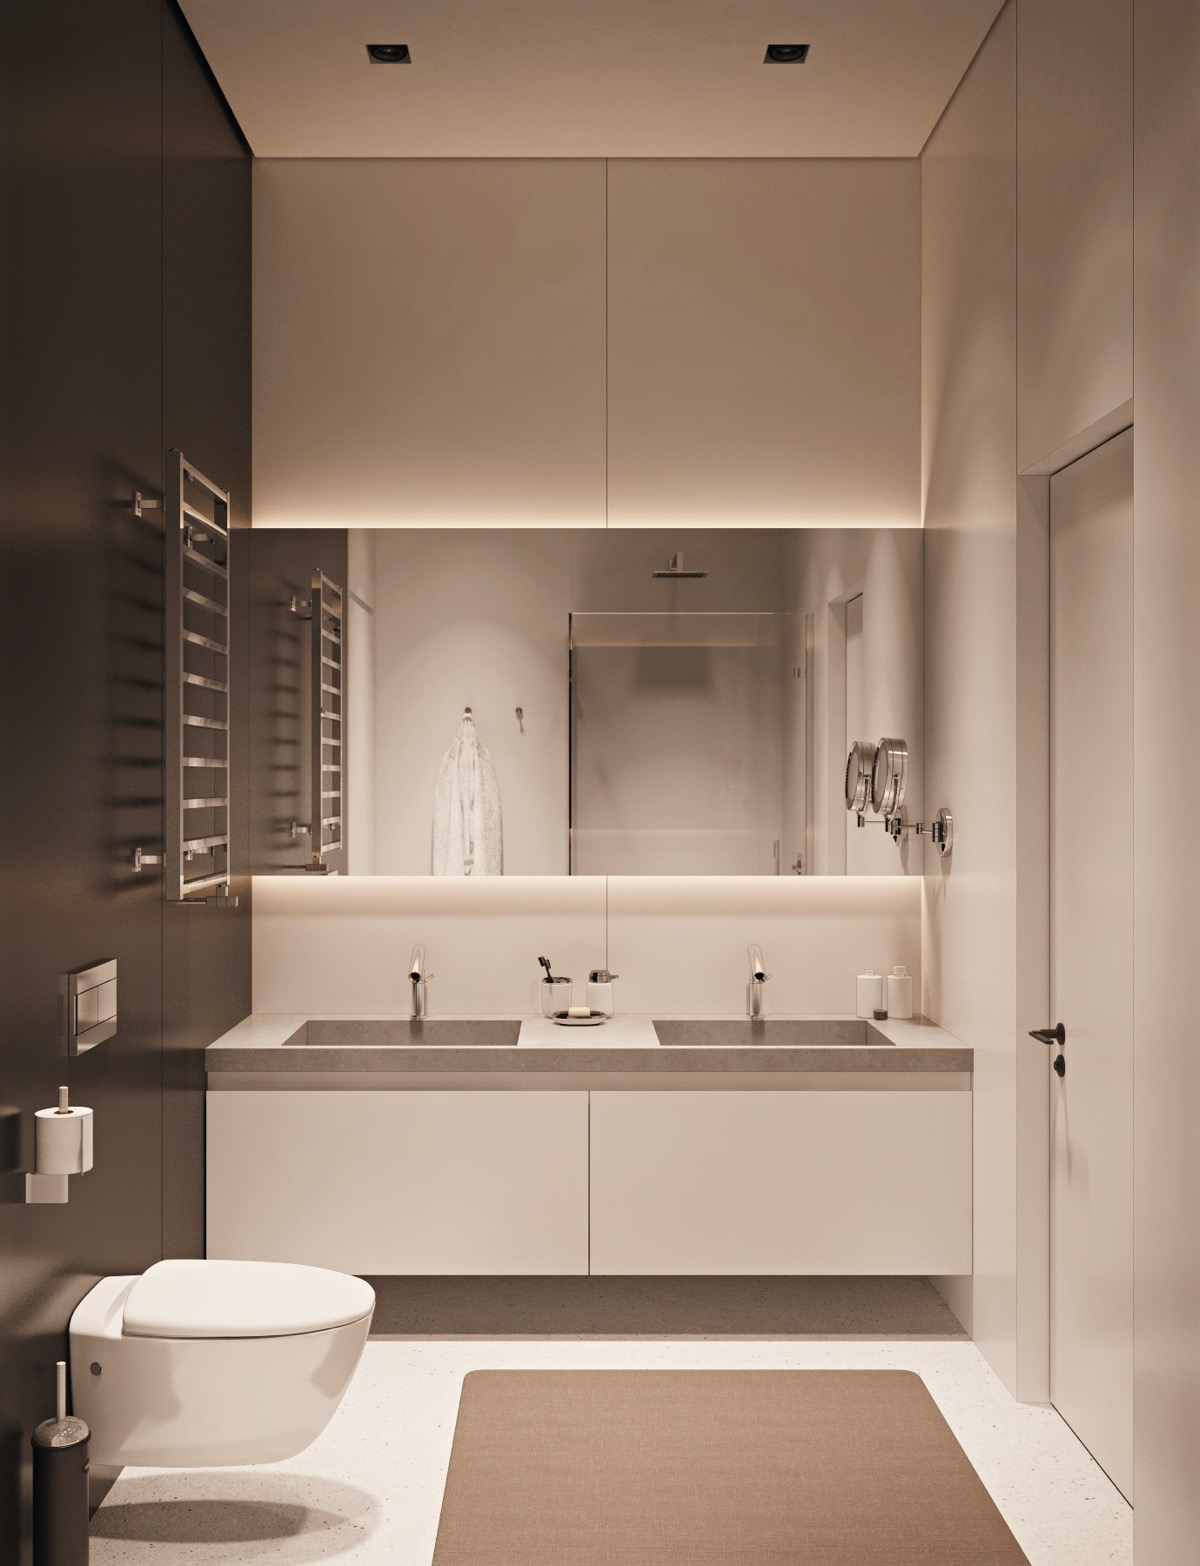 title | Minimalist Bathroom Ideas